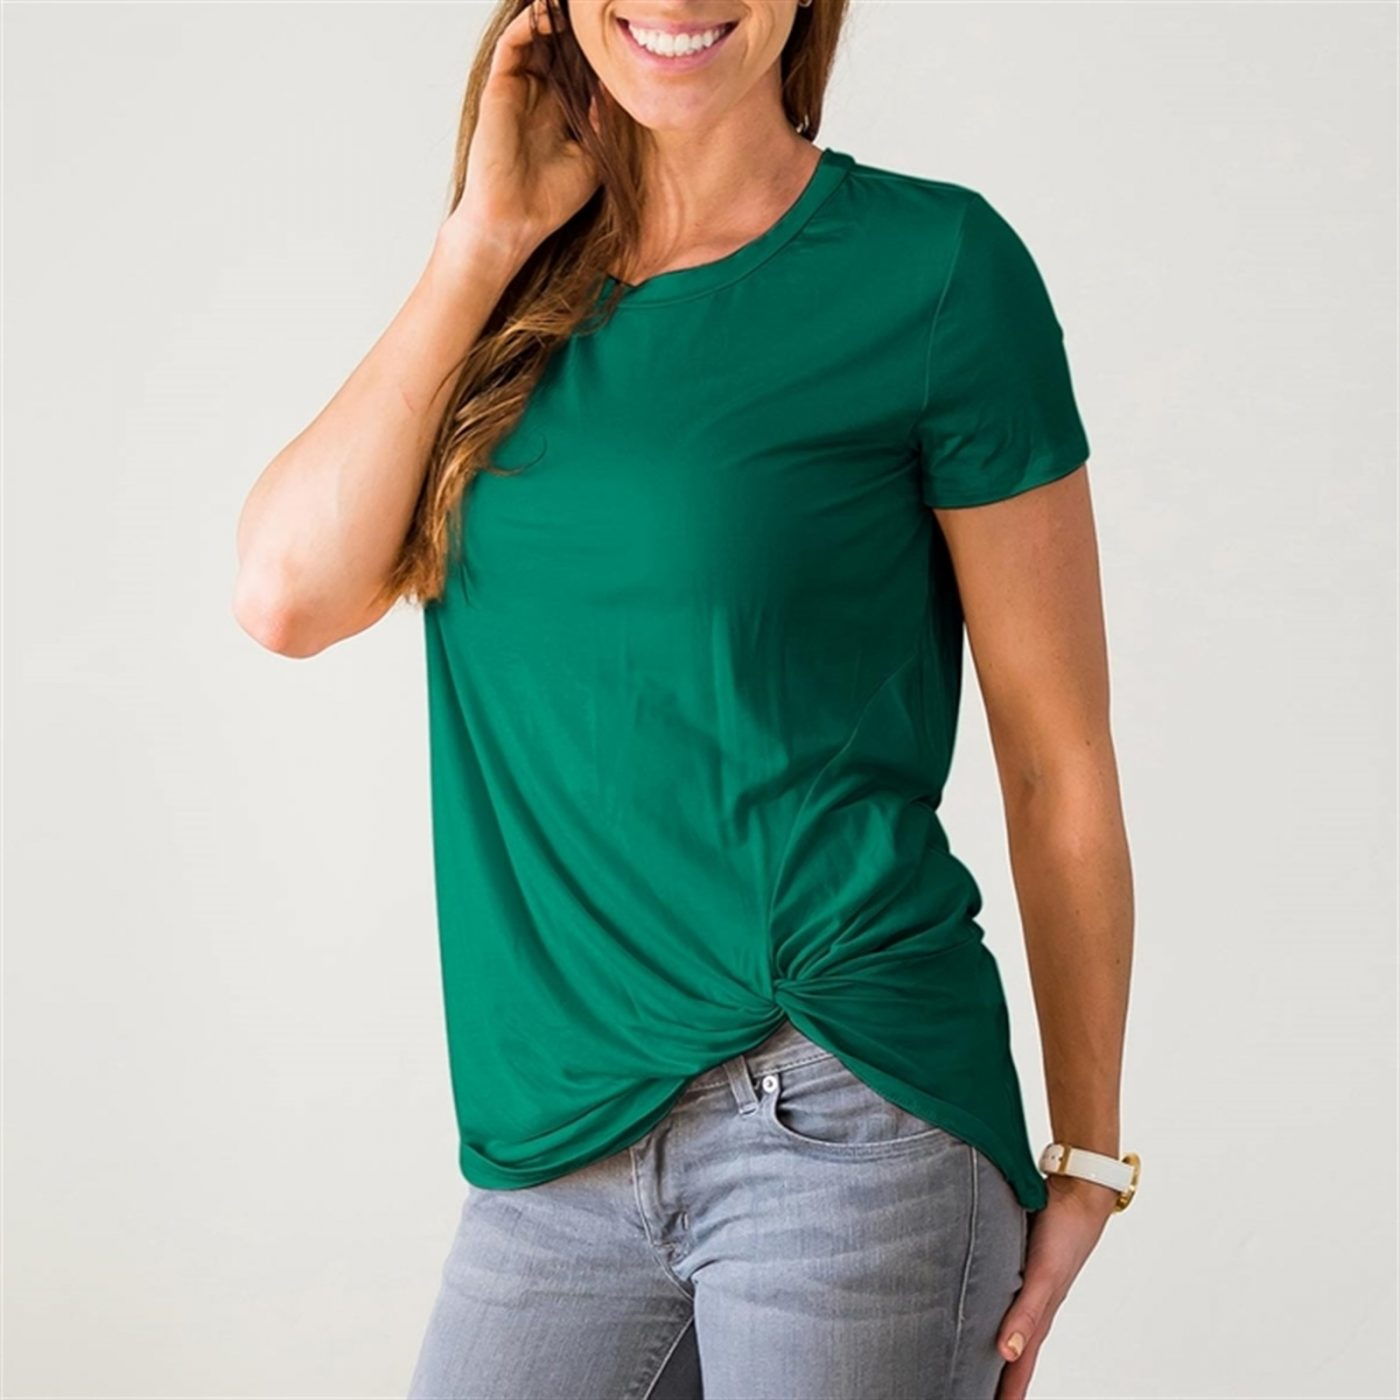 Was $39.99 - Now $19.99 - Twist Front Top   Free Shipping (10/16 to 10/18)